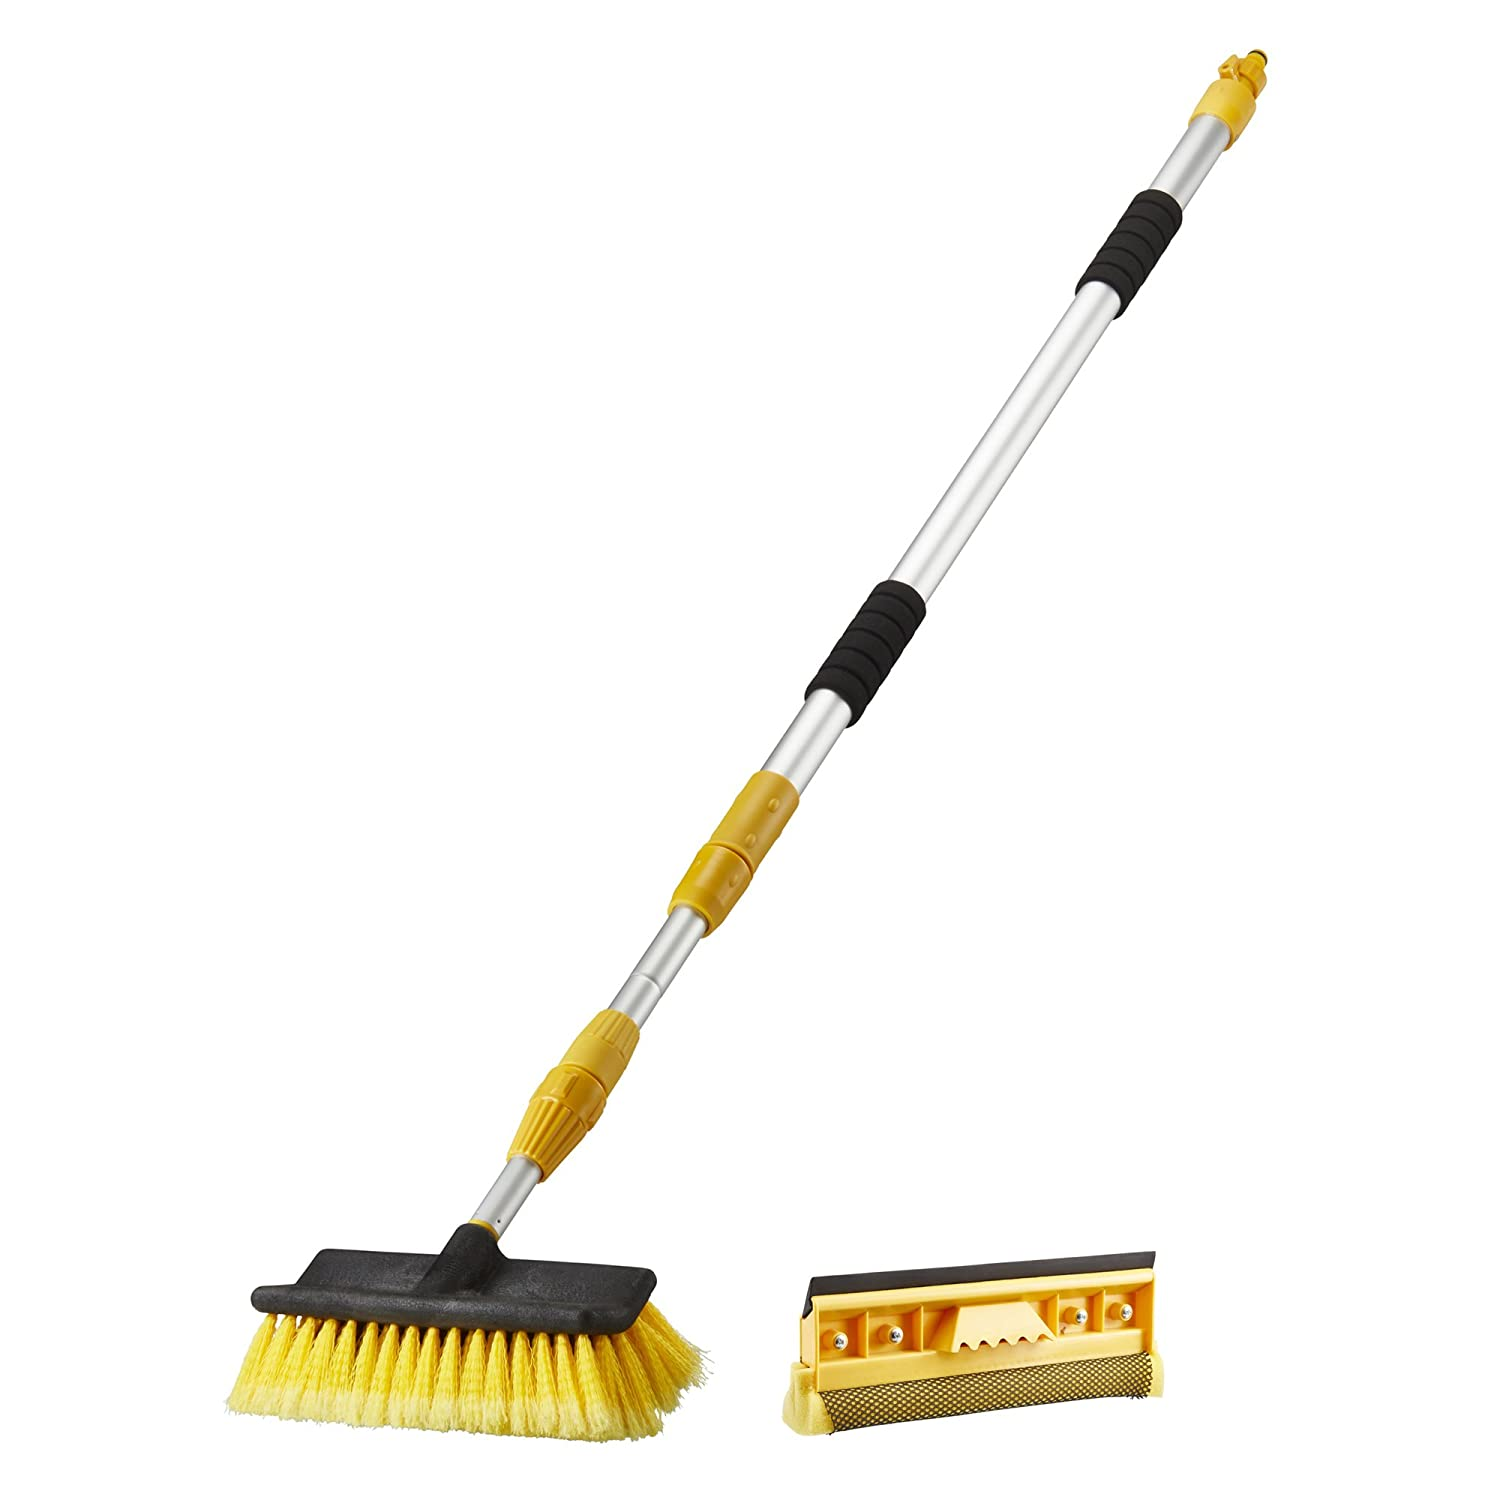 Easy Clean Telescopic Cleaning Hose Brush Set Extendable 2-in-1 with Window Cleaning Head Clifford James